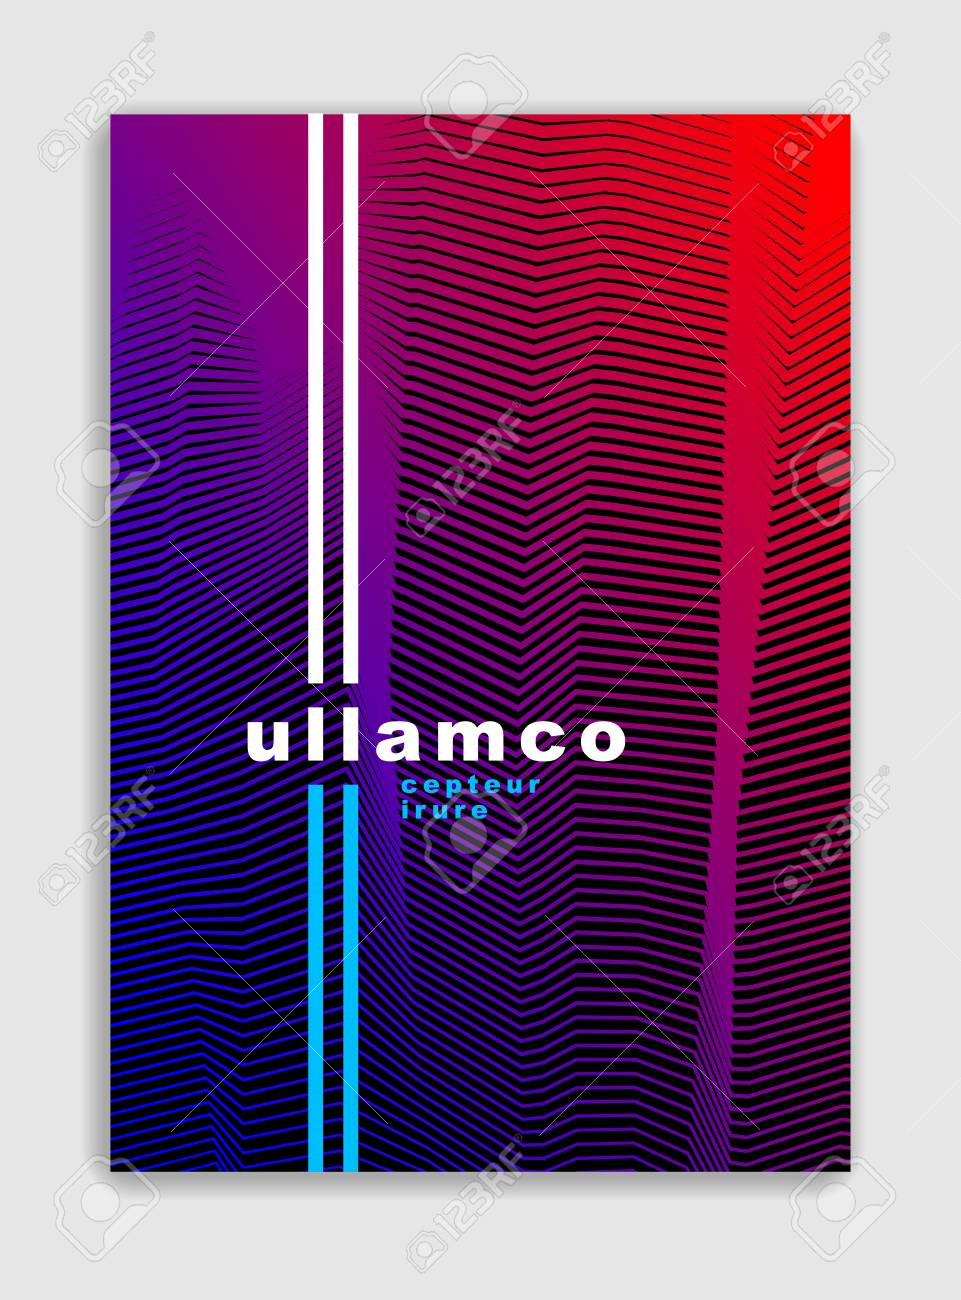 Line art vector minimalistic modern brochure design, cover template, geometric halftone gradient. For Banners, Placards, Posters, Flyers. Perfect and unlike, pattern texture. - 102402995